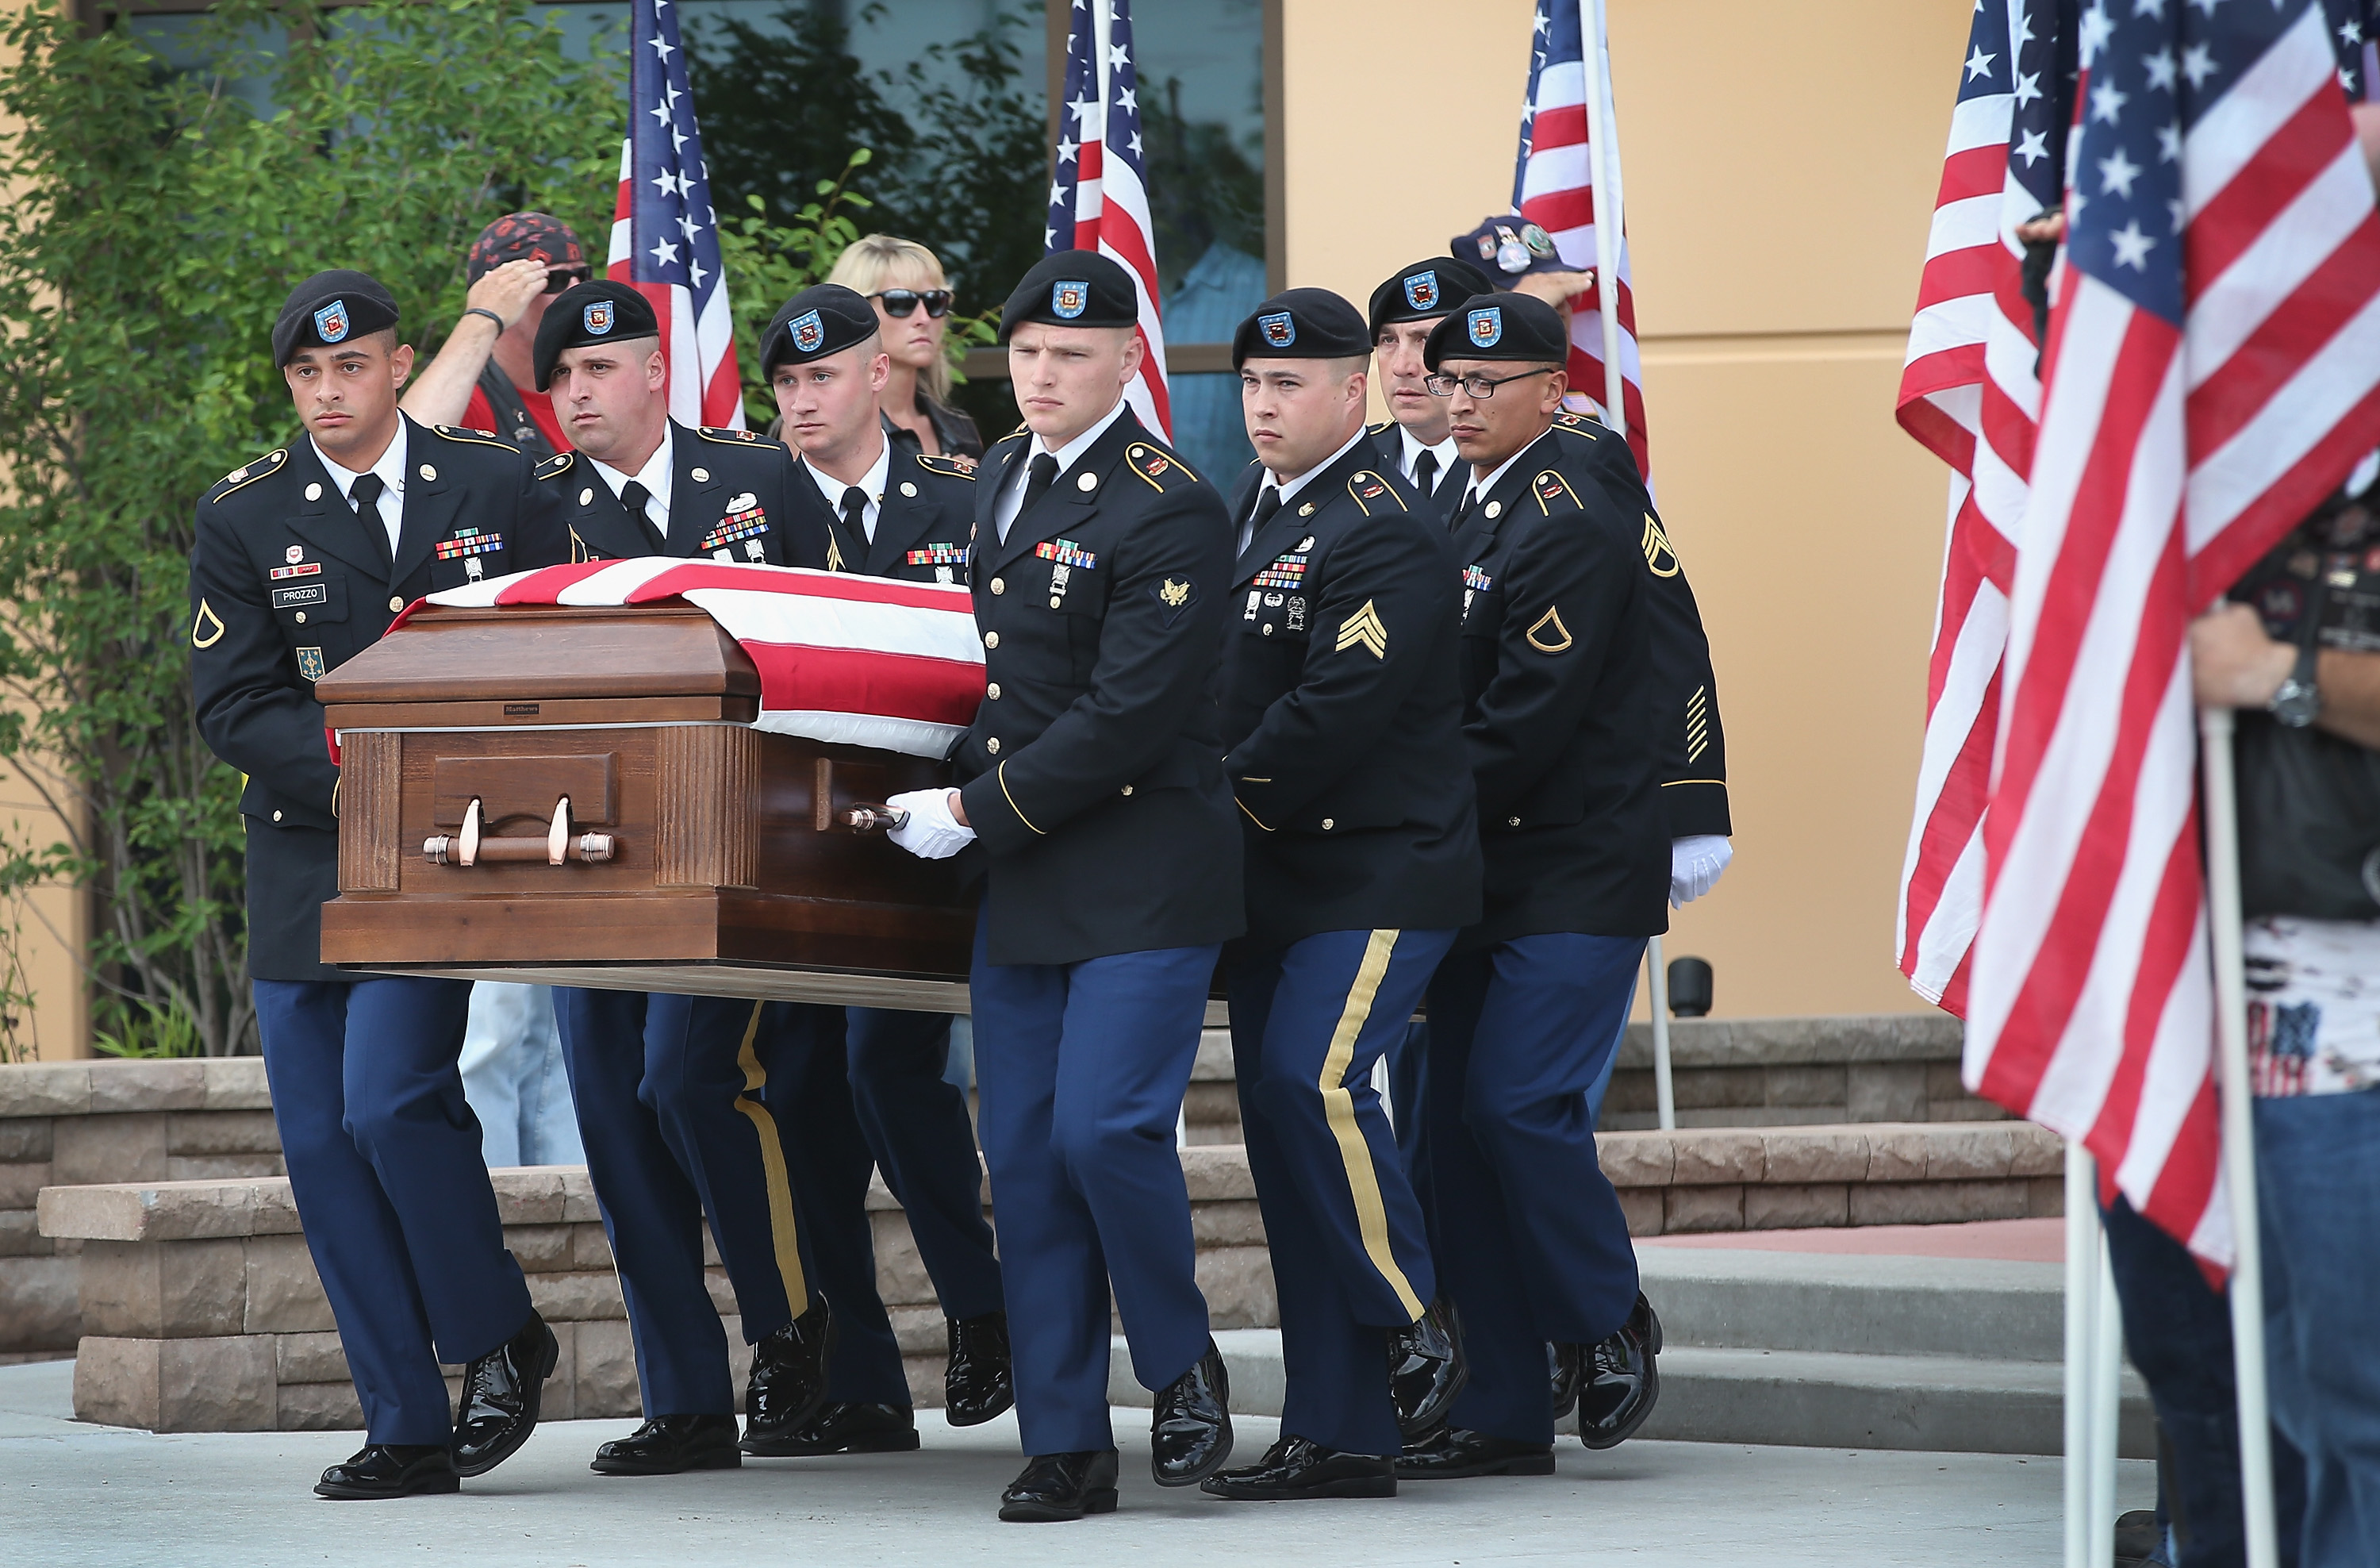 Soldiers carry the casket of U.S. Army Pfc. Aaron Toppen from Parkview Christian Church following his funeral service on June 24, 2014 in Mokena, Ill.